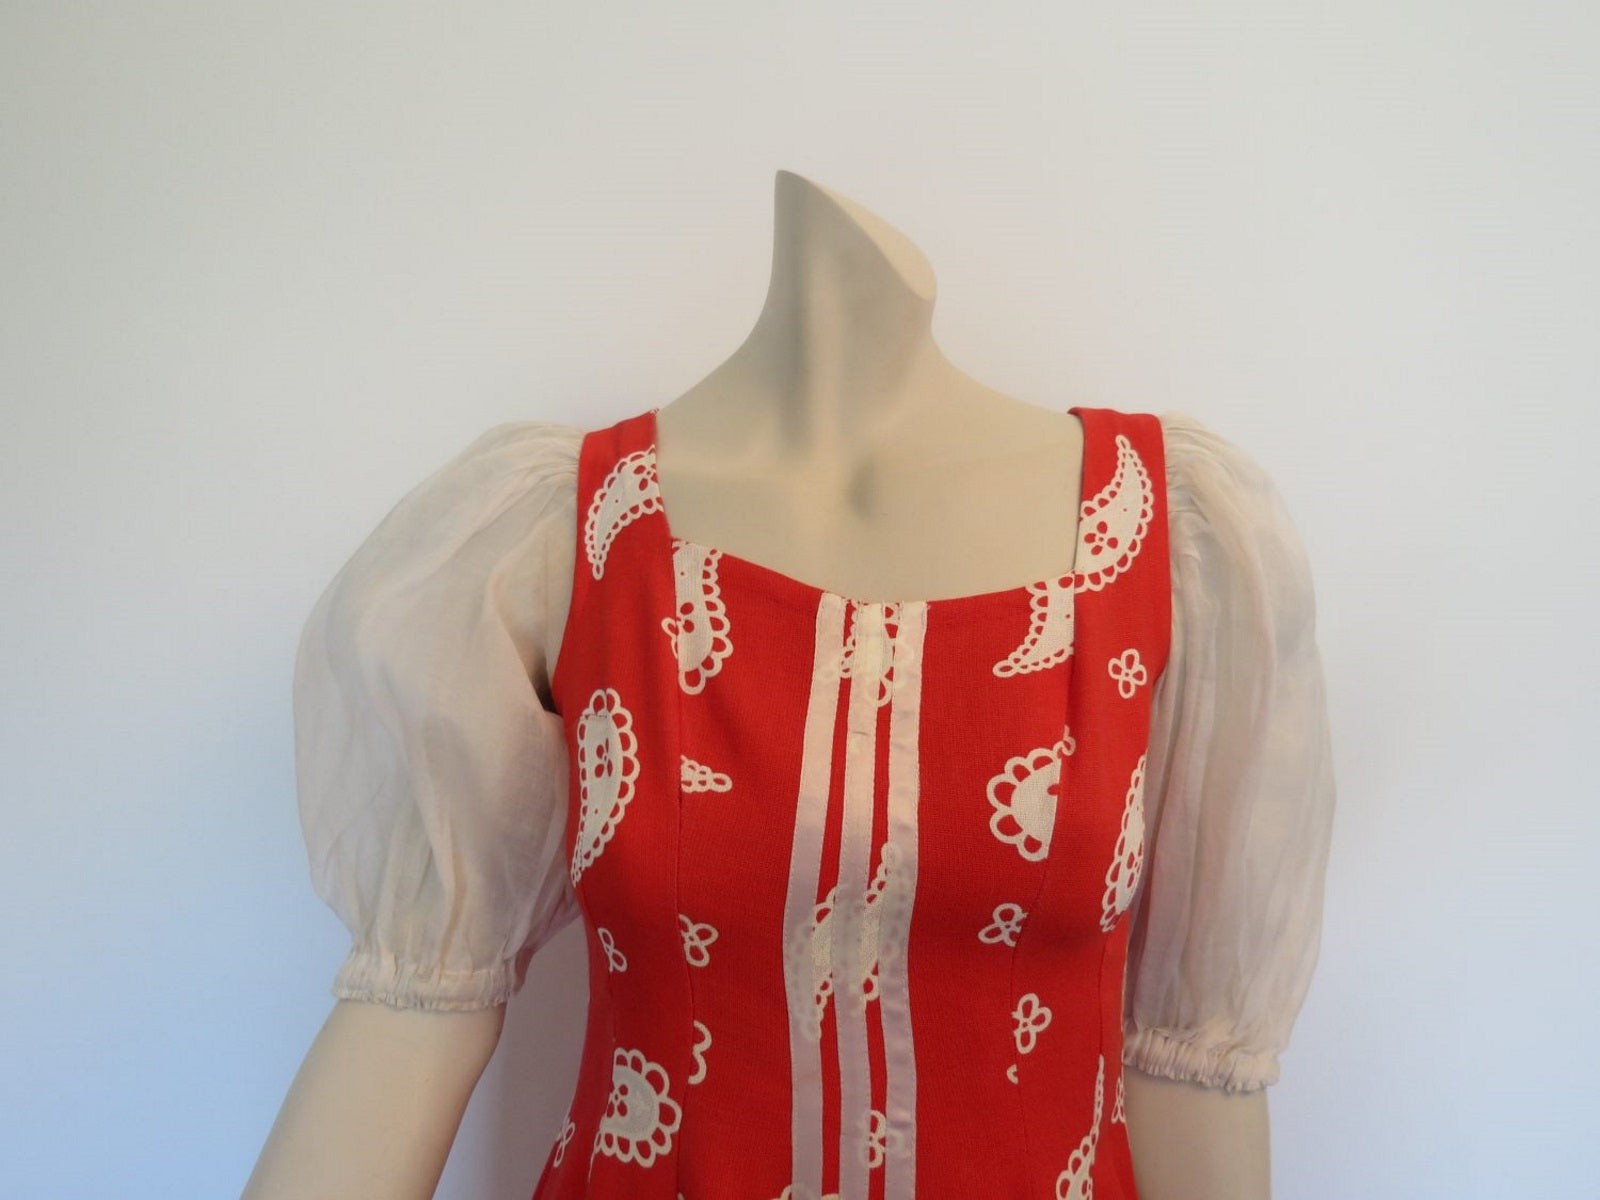 vintage 1950s style dirndl red  paisley dress with white puffy organdy sleeves